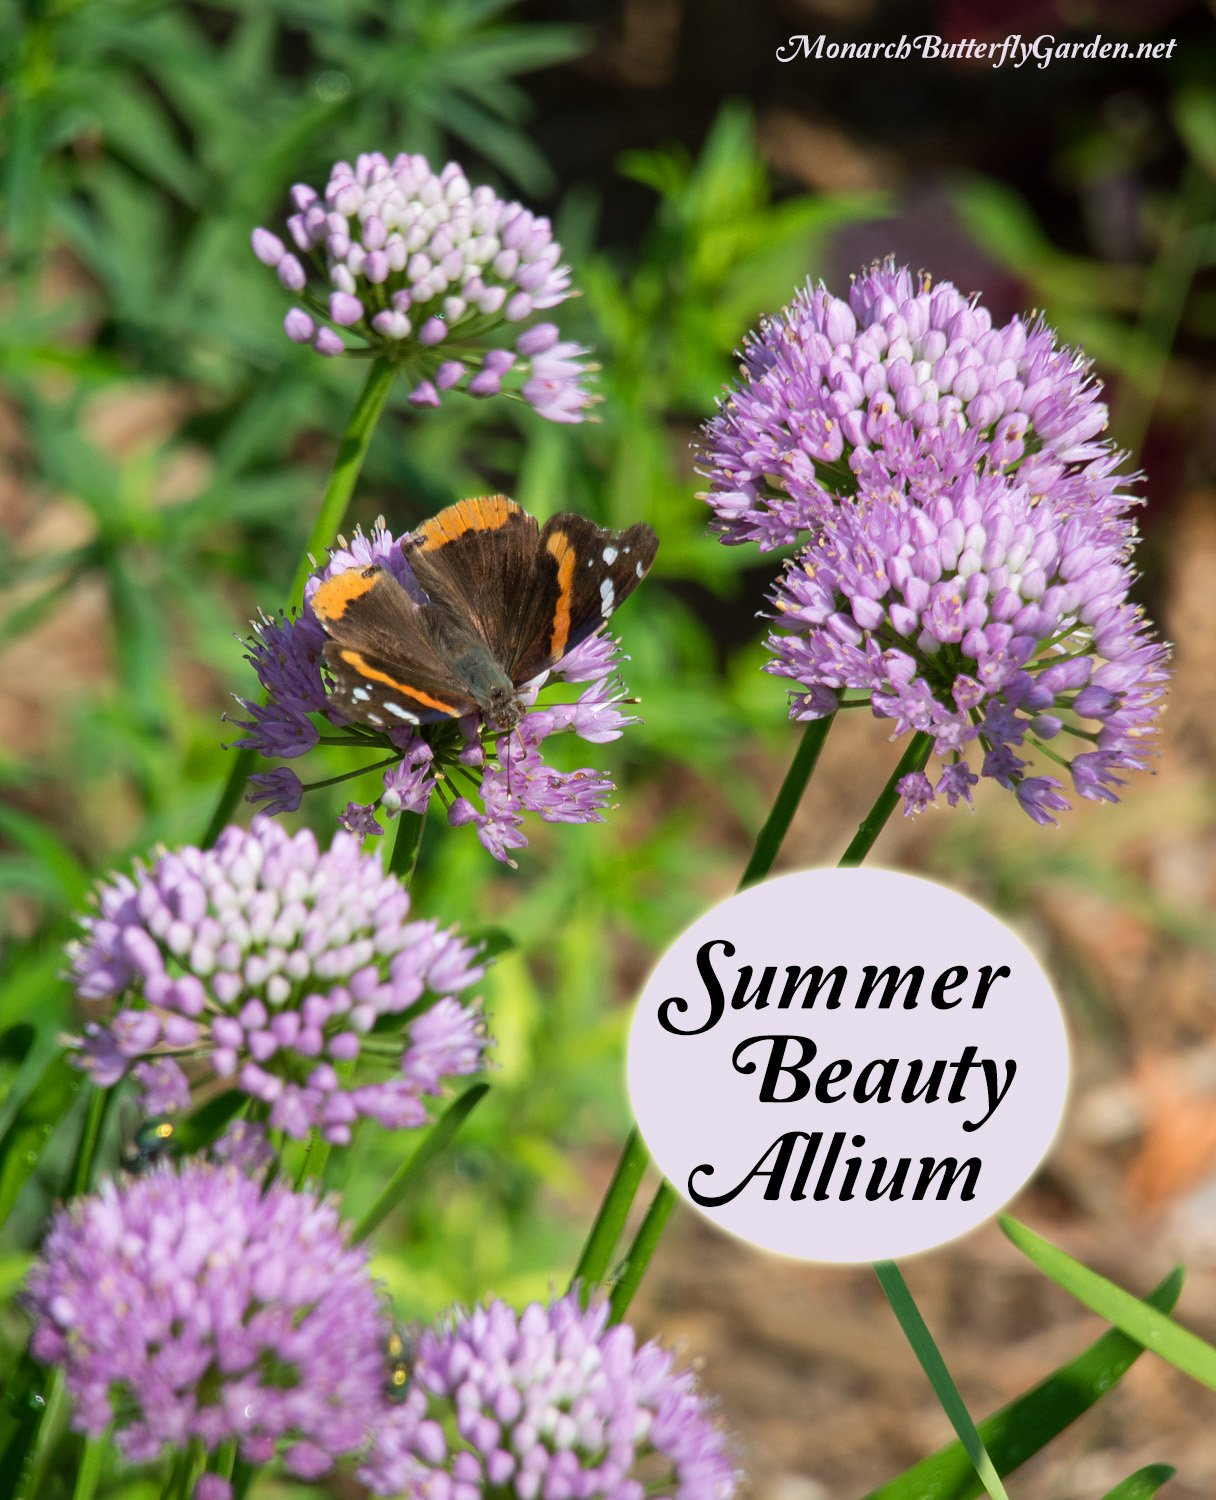 Summer beauty allium is a pollinator haven during the prime time of butterfly season. Its showy, pink blooms attract butterflies and bees, while repelling those annoying aphids!